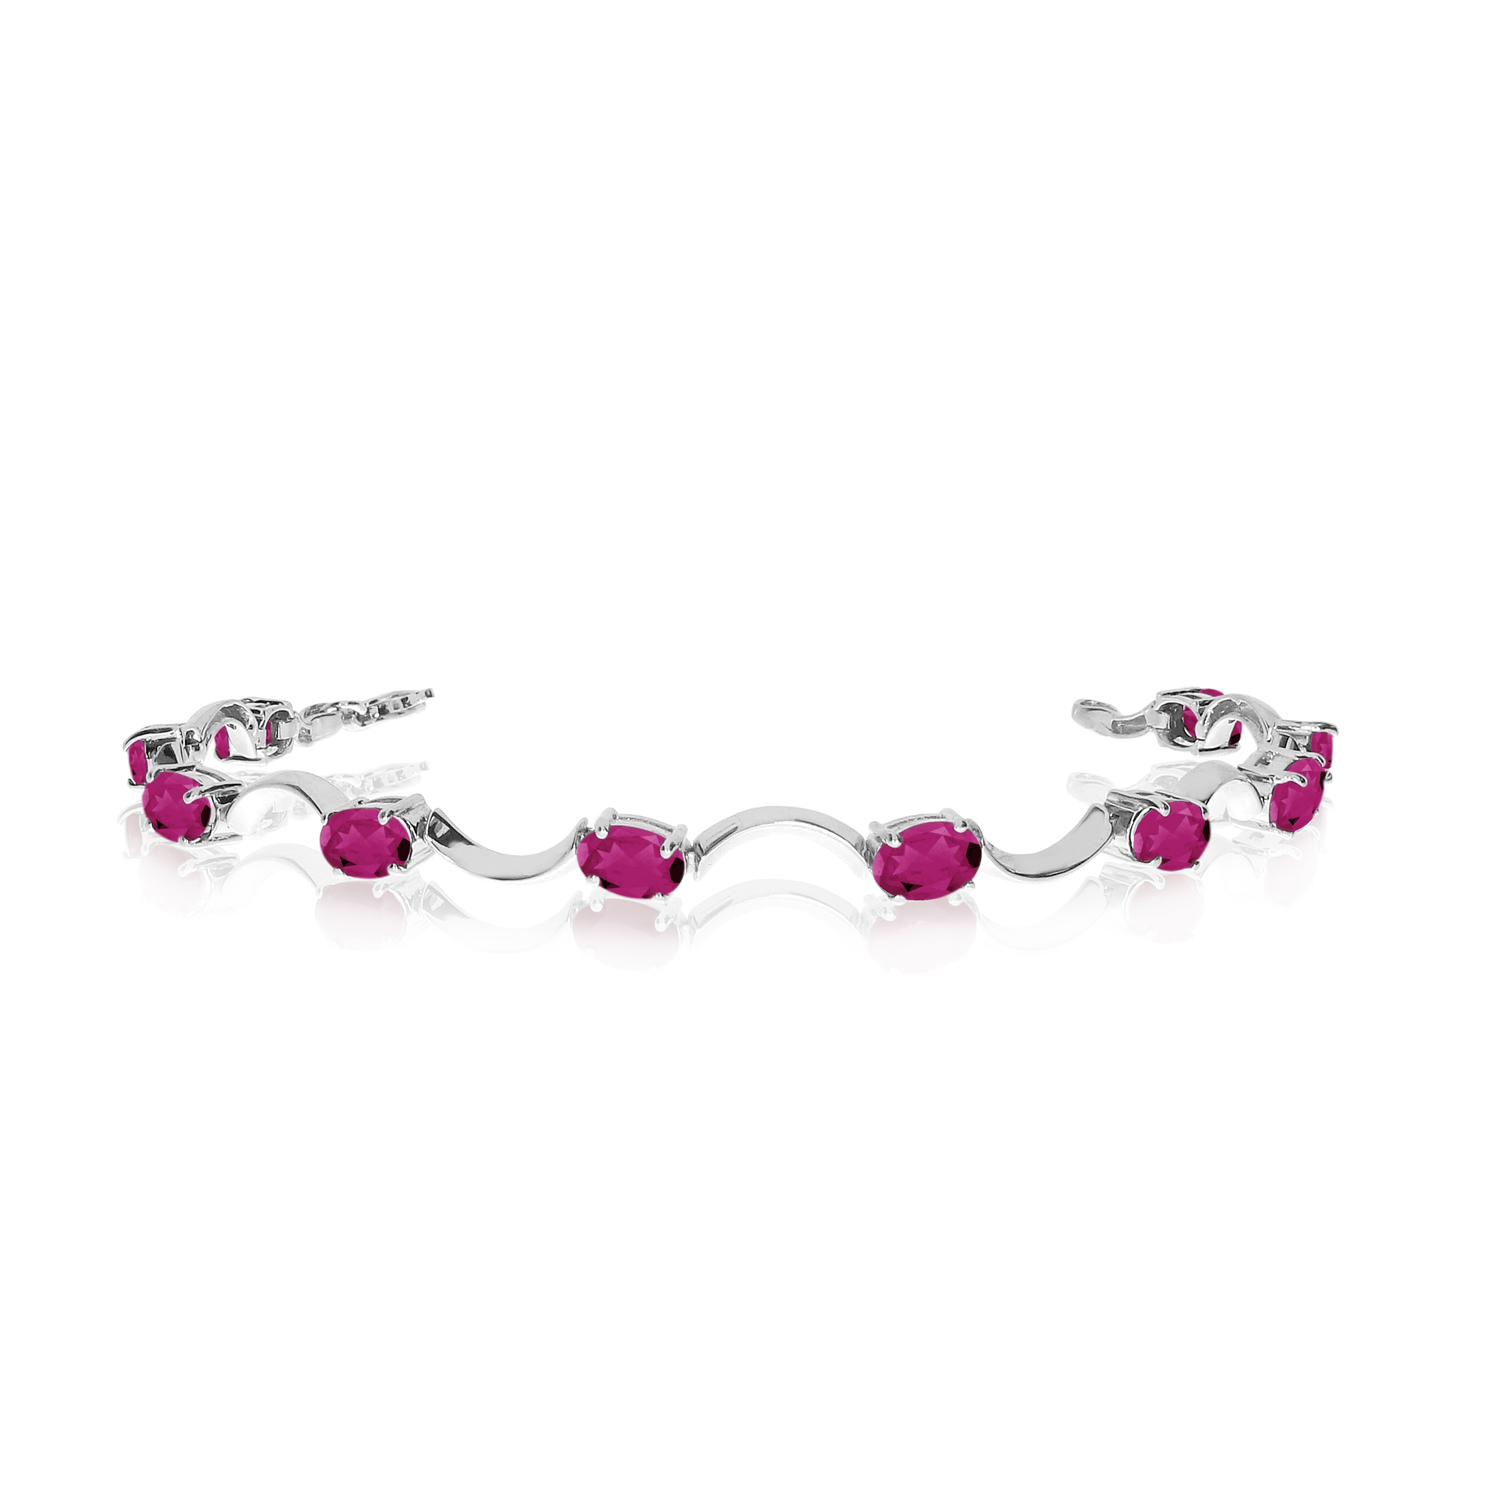 14K White Gold Oval Pink Topaz Curved Bar Bracelet by